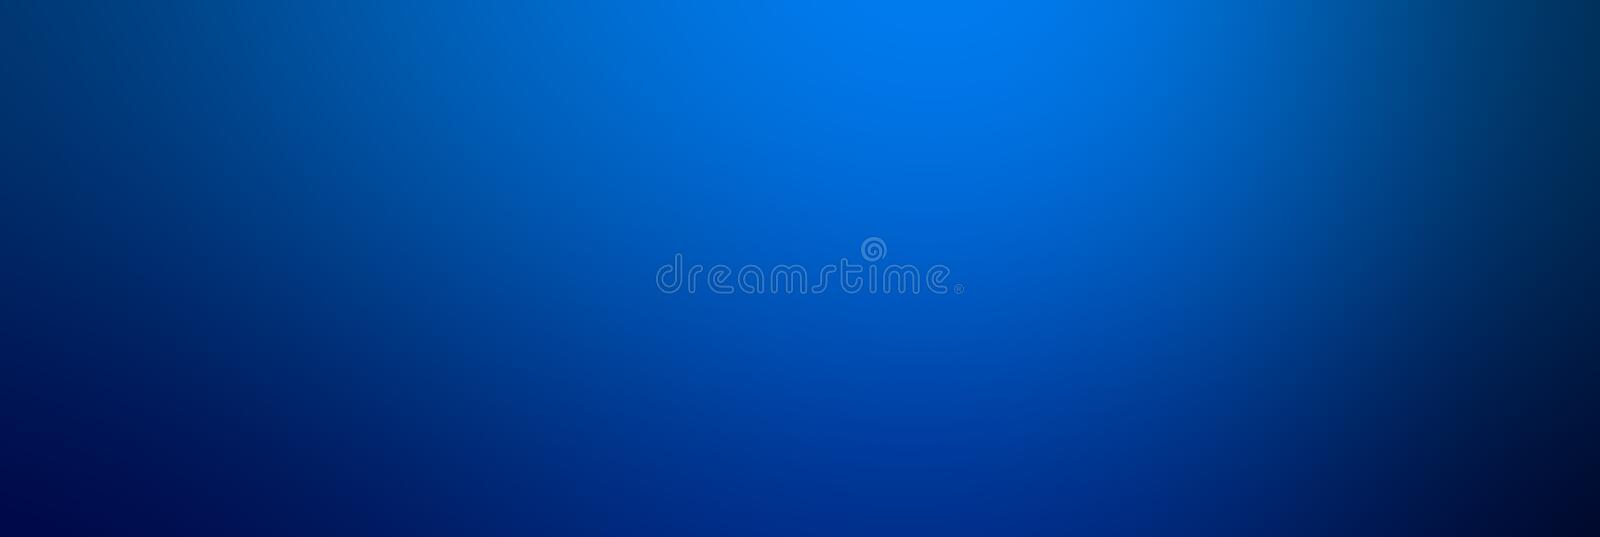 Abstract Blue color Smooth gradient background. Azure or Blue te royalty free stock photos